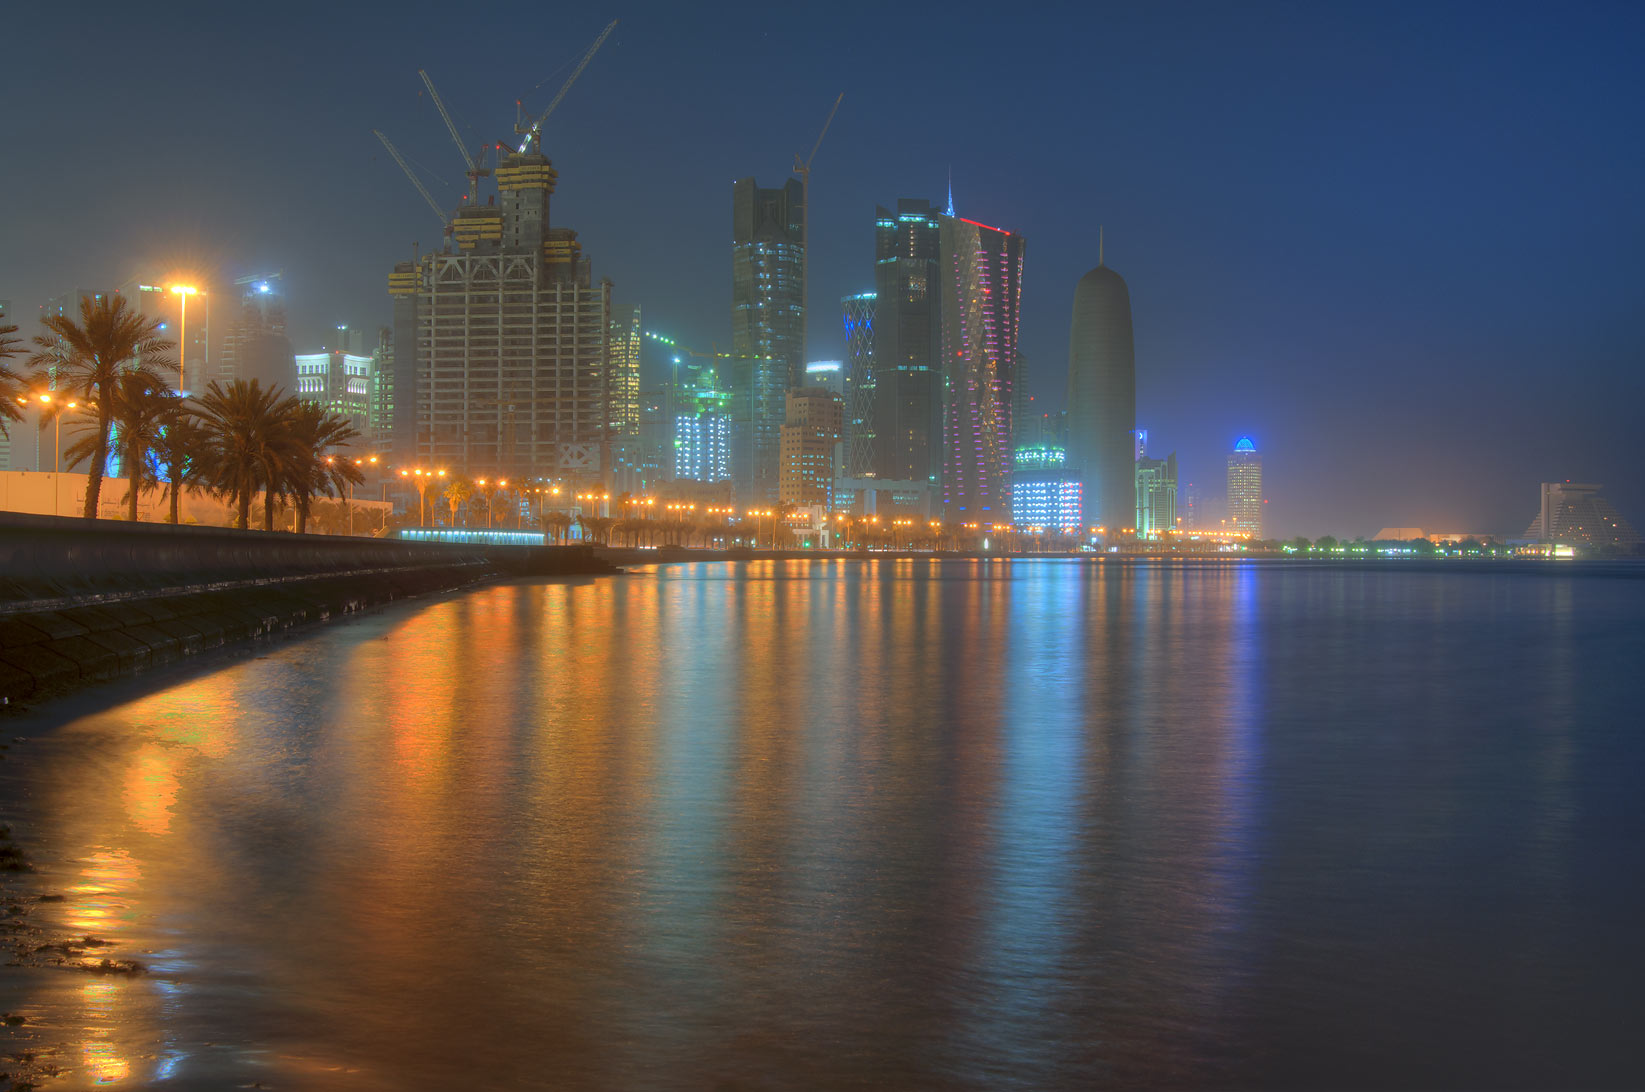 Corniche (seafront promenade) and West Bay at morning. Doha, Qatar